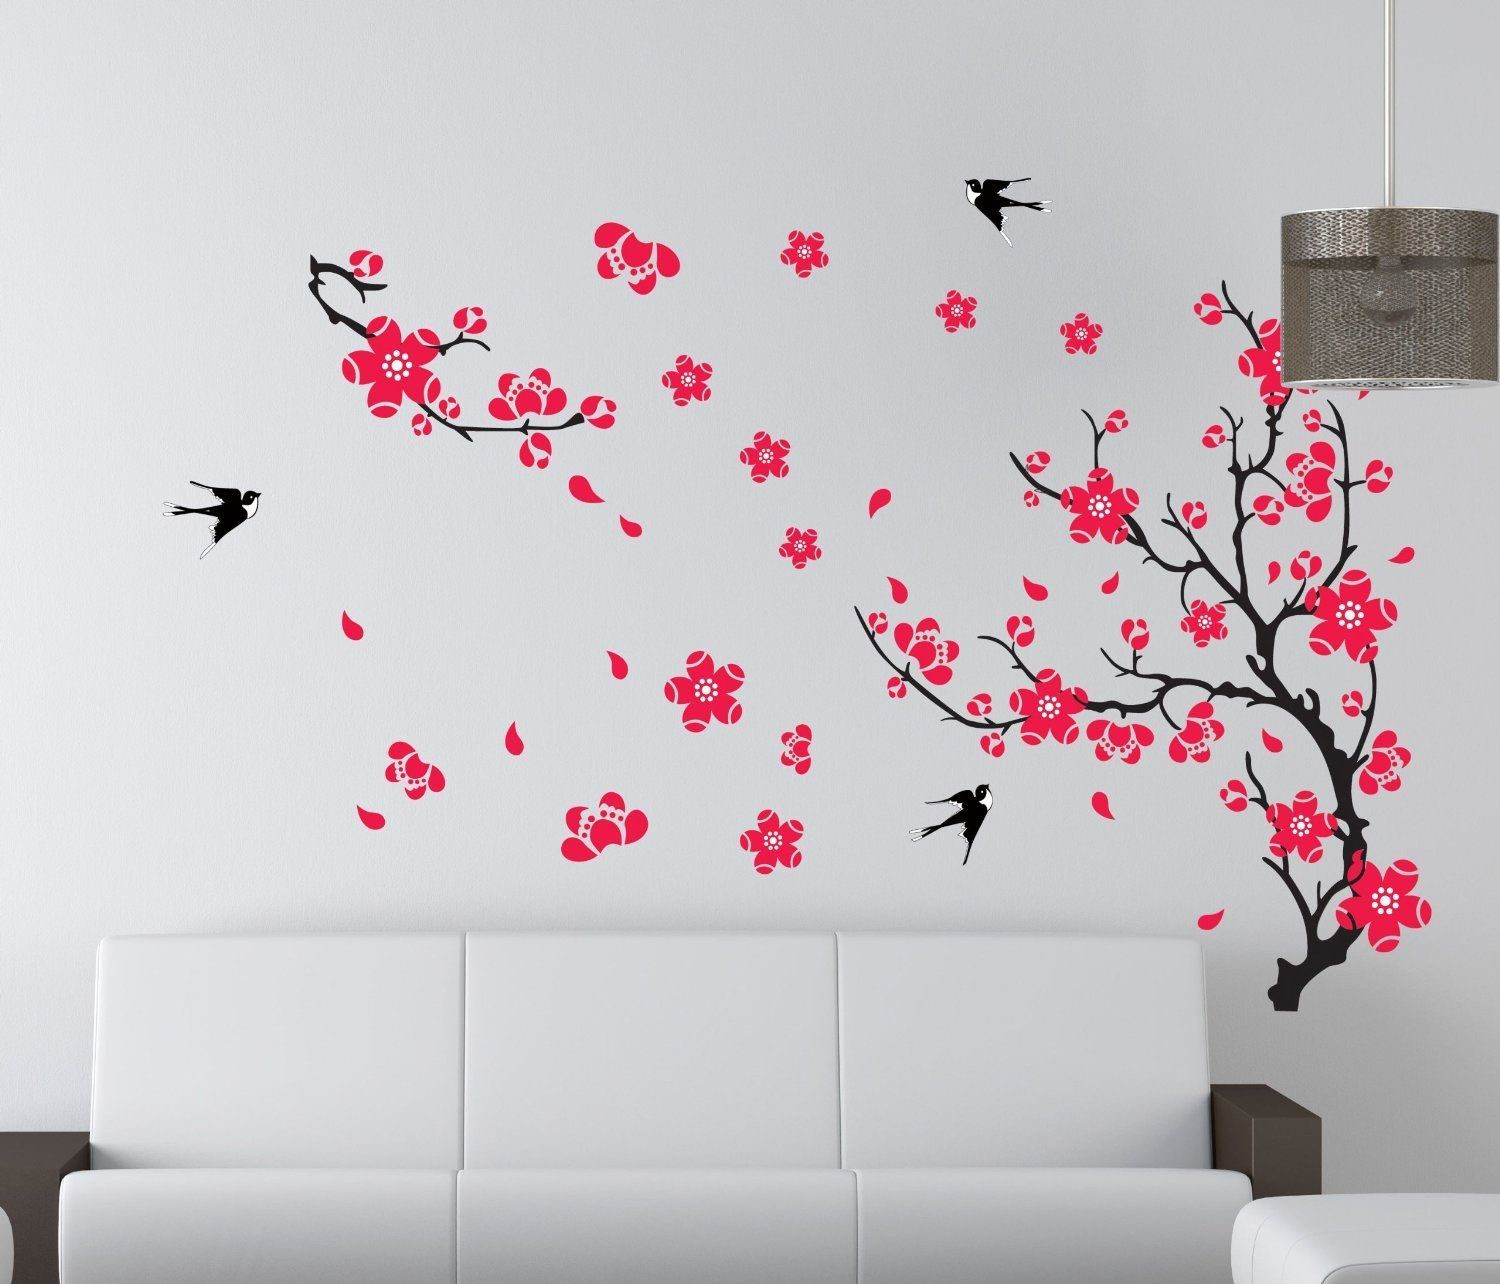 Large plum blossom flower removable wall sticker decor decal large plum blossom flower removable wall sticker decor decal amipublicfo Choice Image